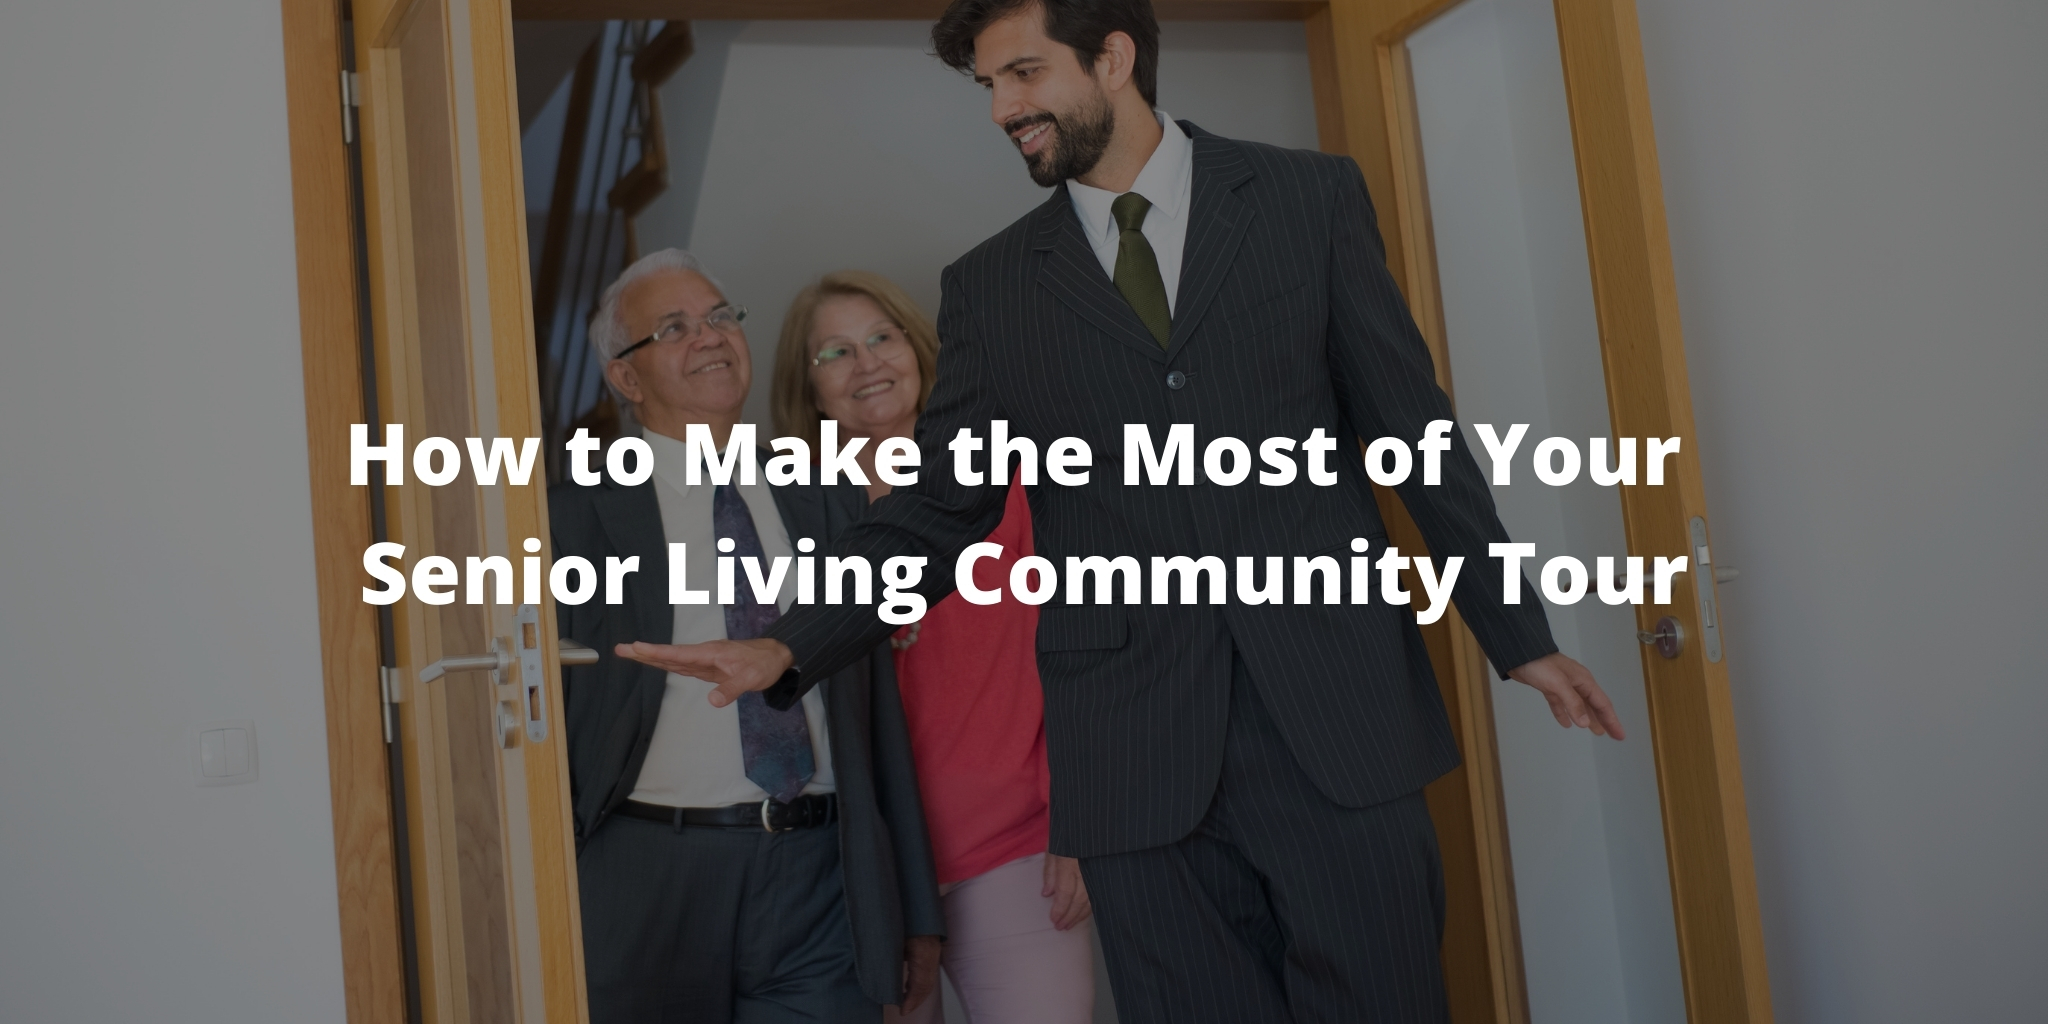 How to Make the Most of Your Senior Living Community Tour